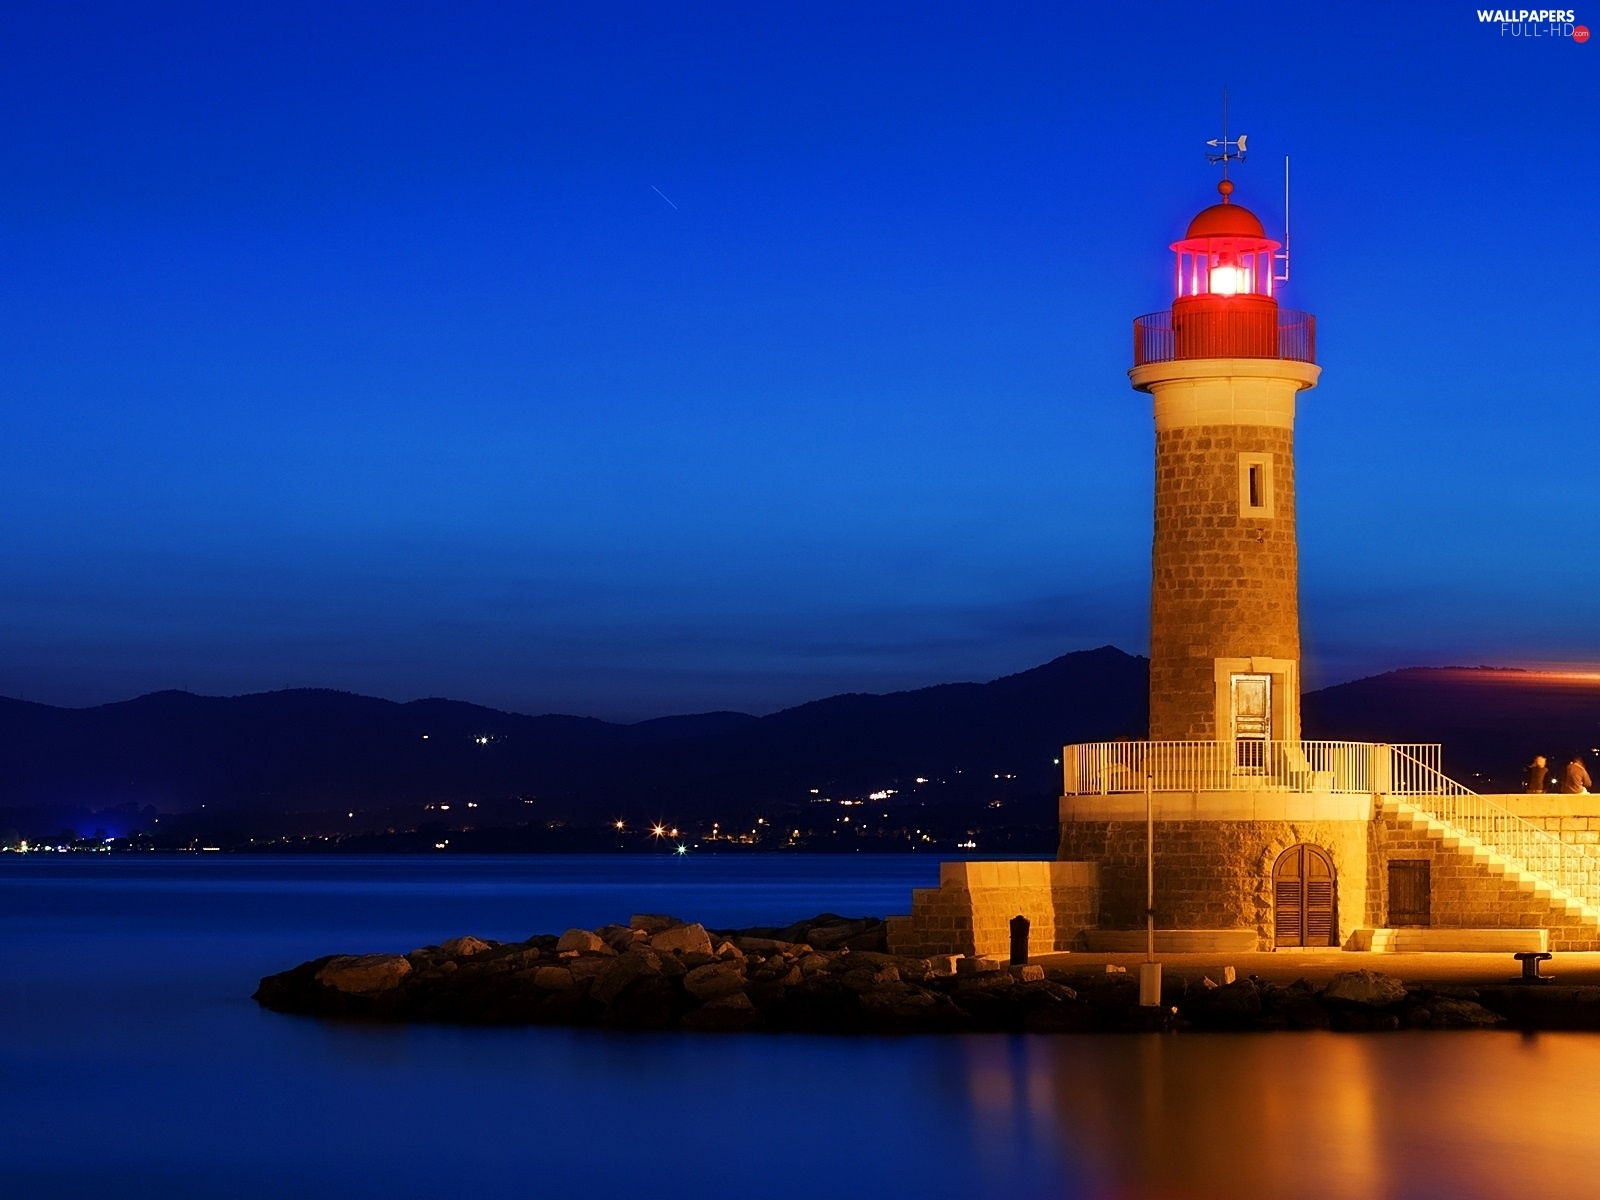 maritime, Night, Lighthouse